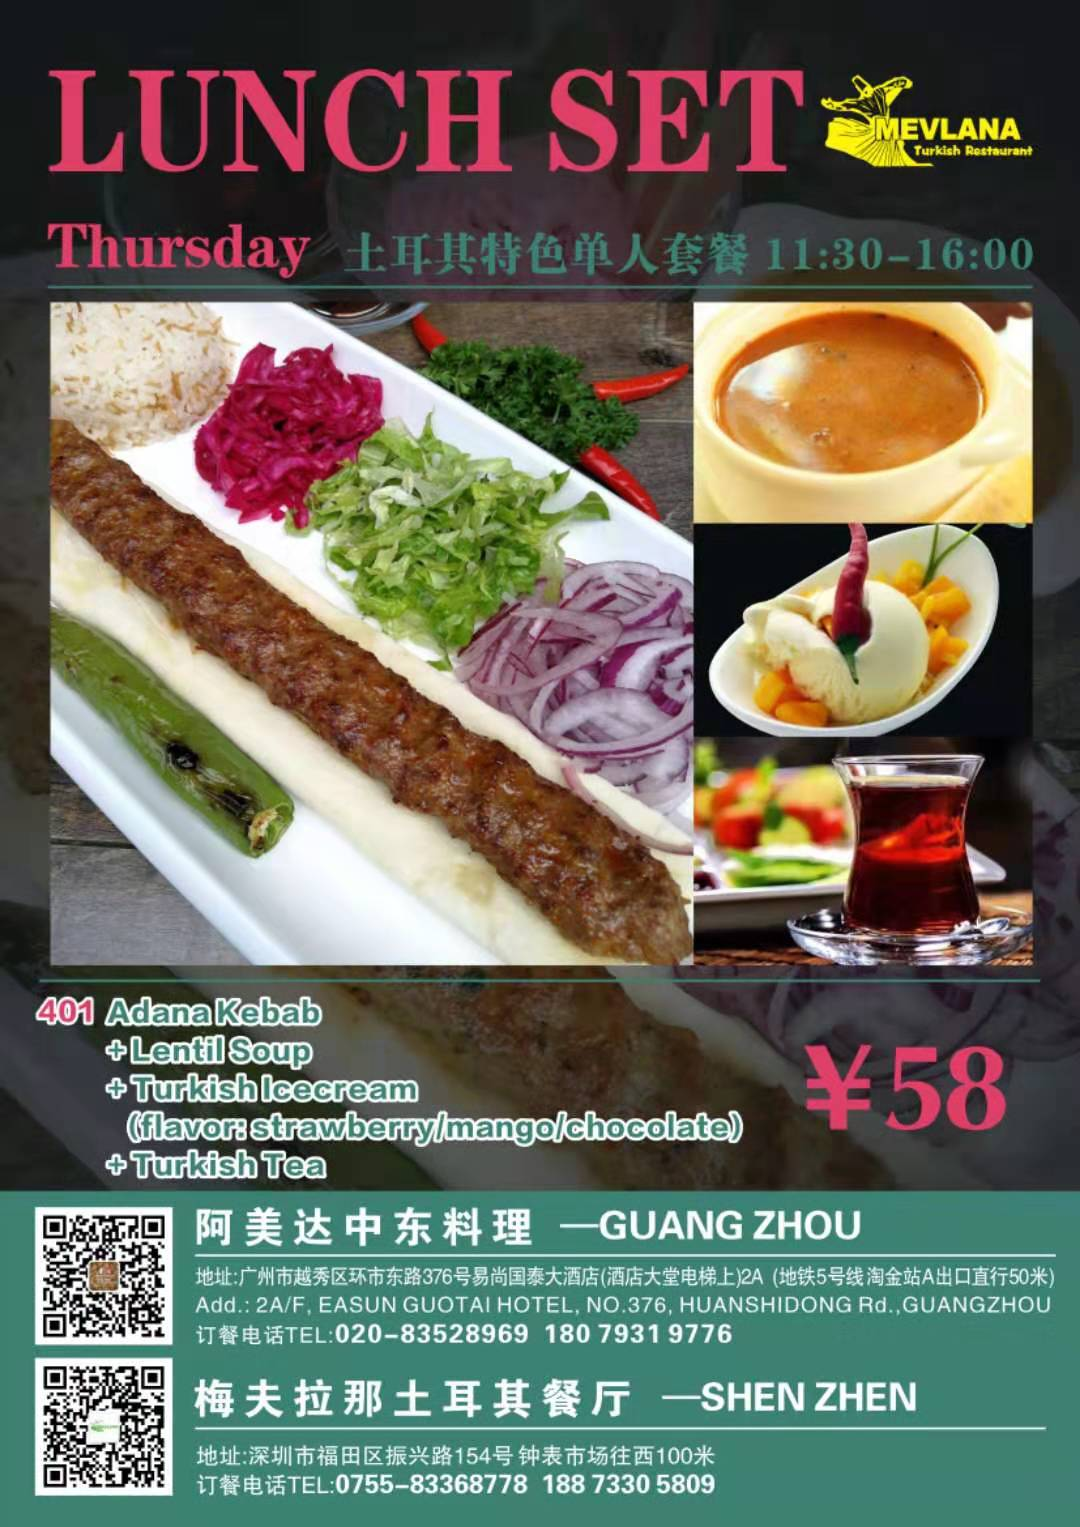 【MEVLANA】Thursday LUNCH SET(58元)